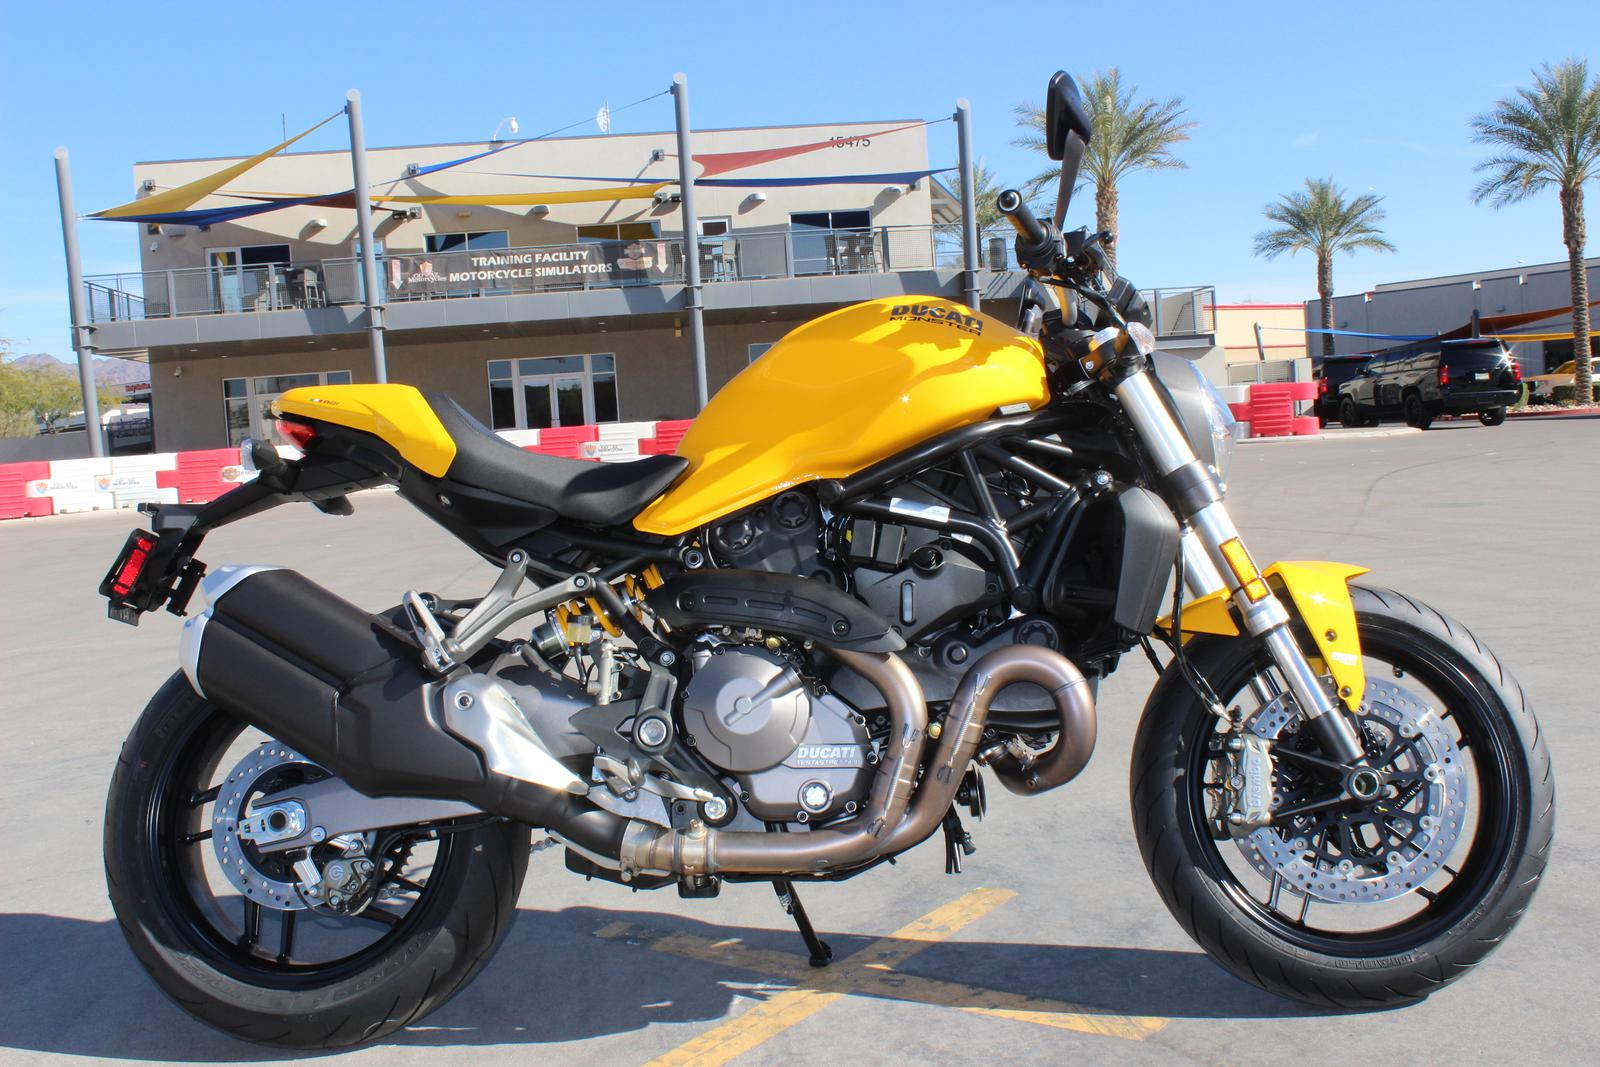 2018 Ducati Monster 821 - Ducati Yellow / UP TO $750 IN FREE ...